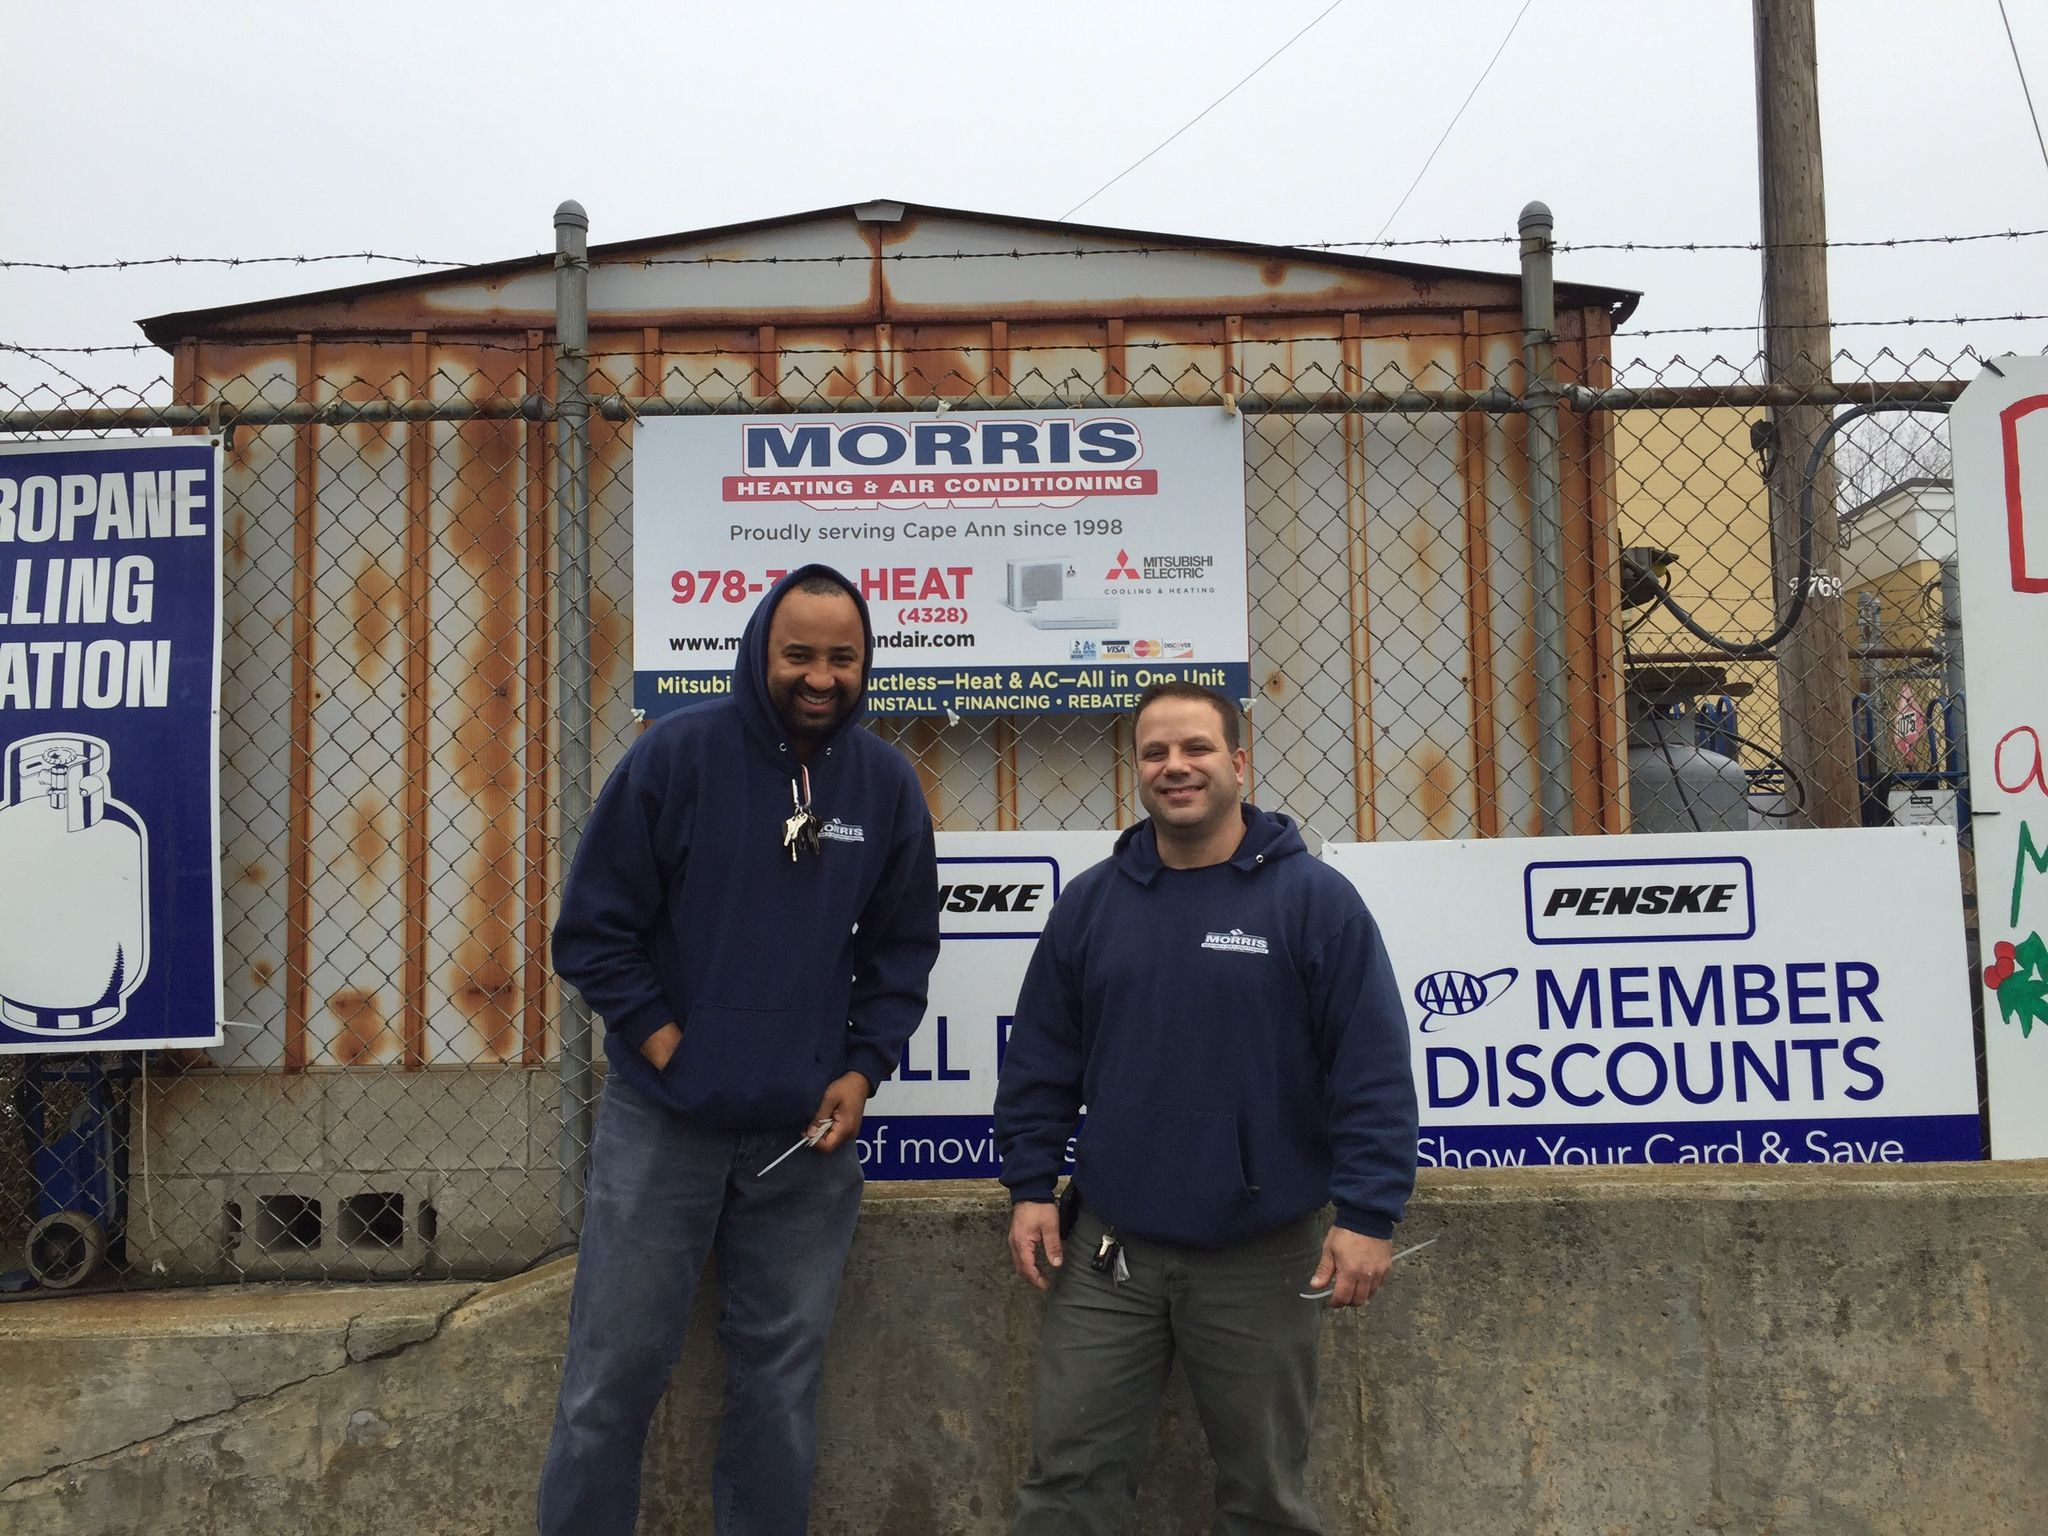 Tony And Chris Just Hung Our Sign On Fosters Grill Store Fence